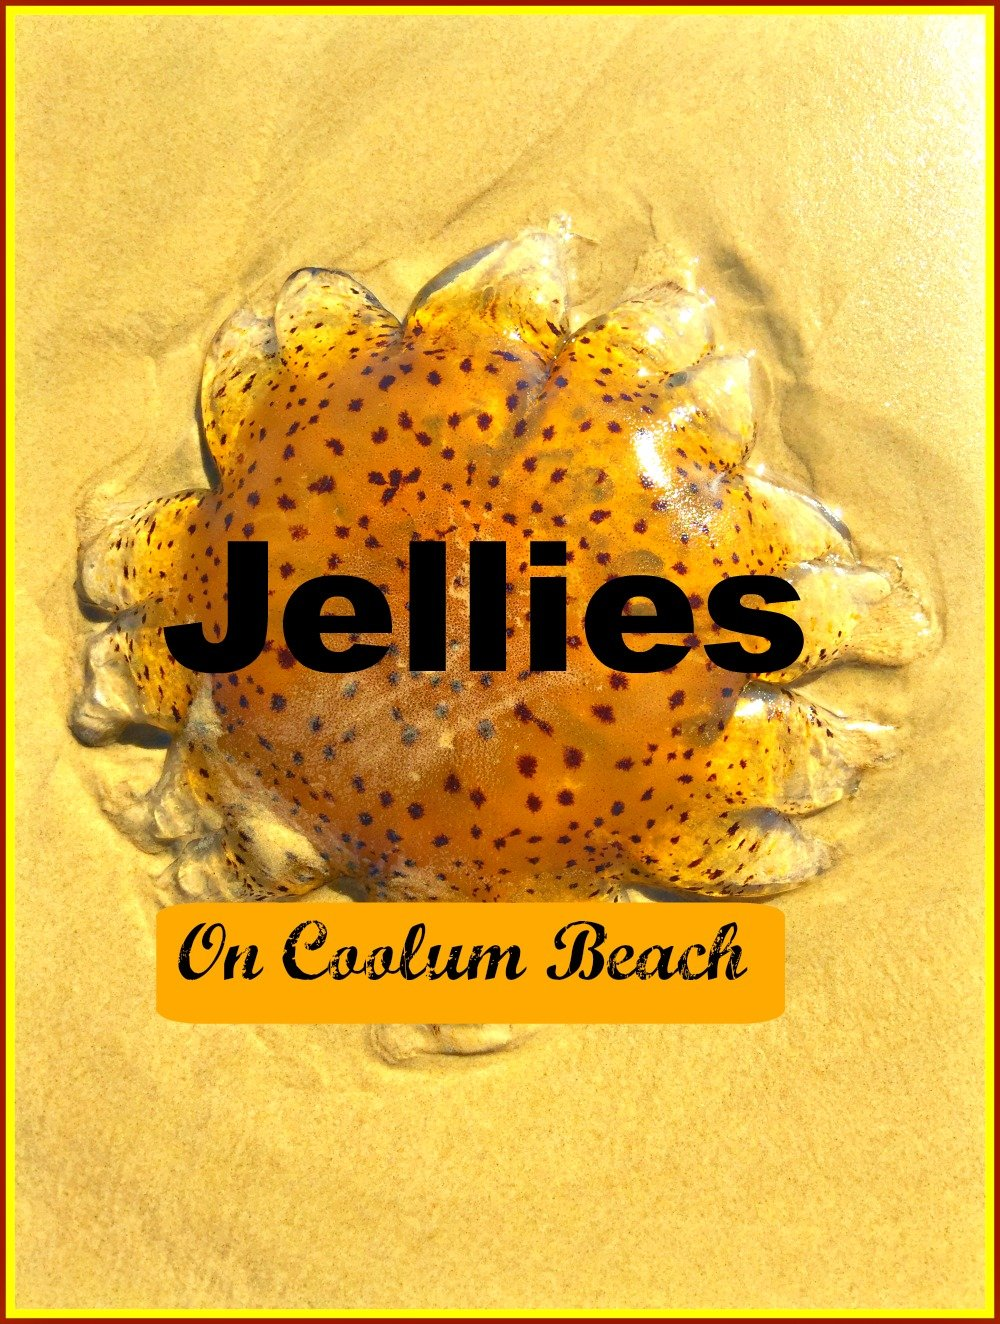 Jellies at Coolum Beach